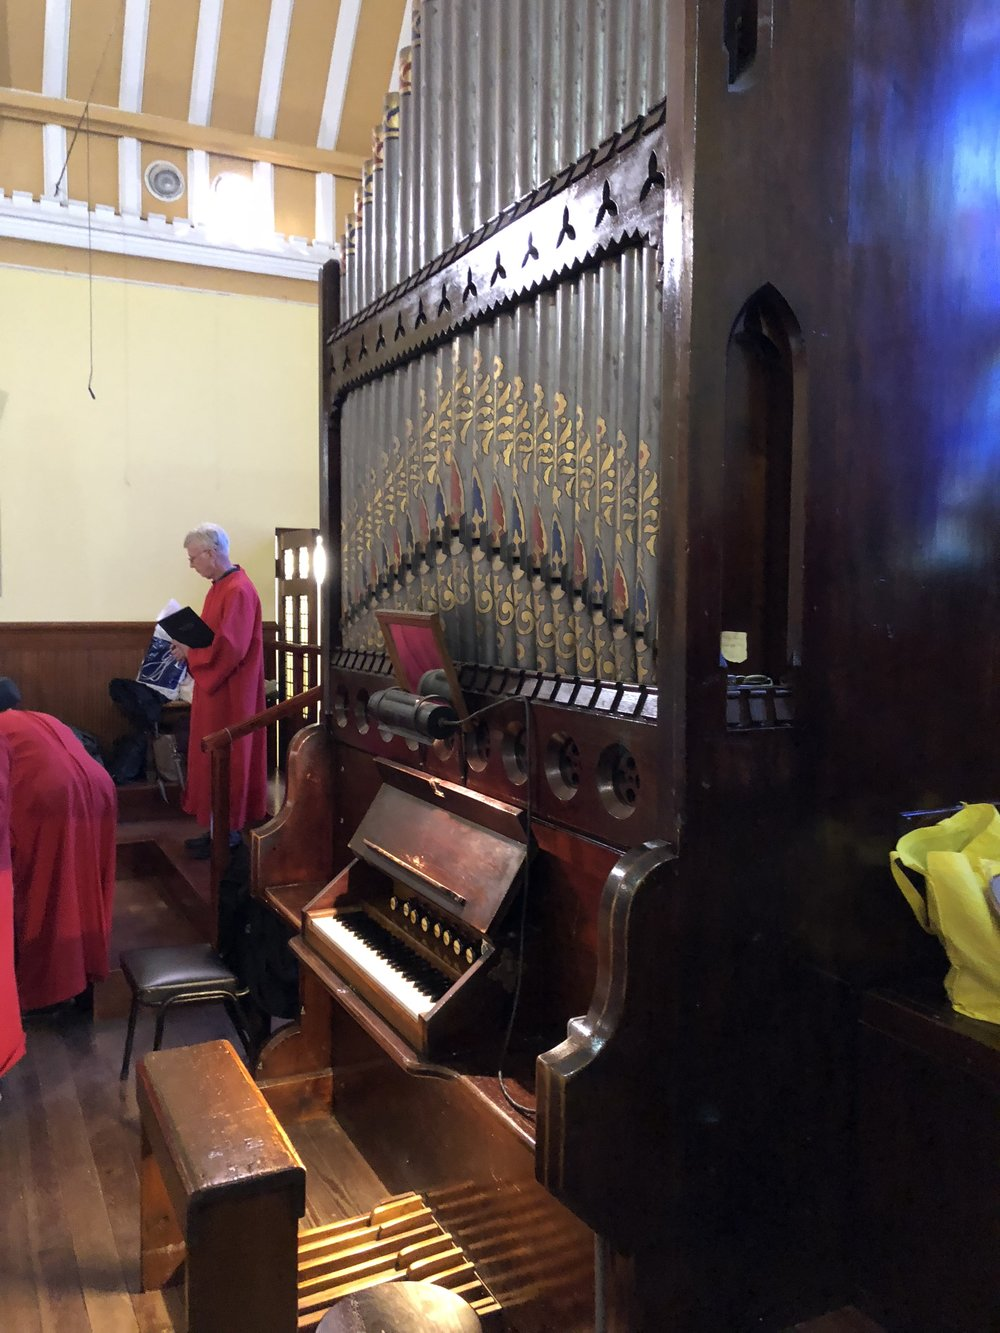 The tiny pipe organ